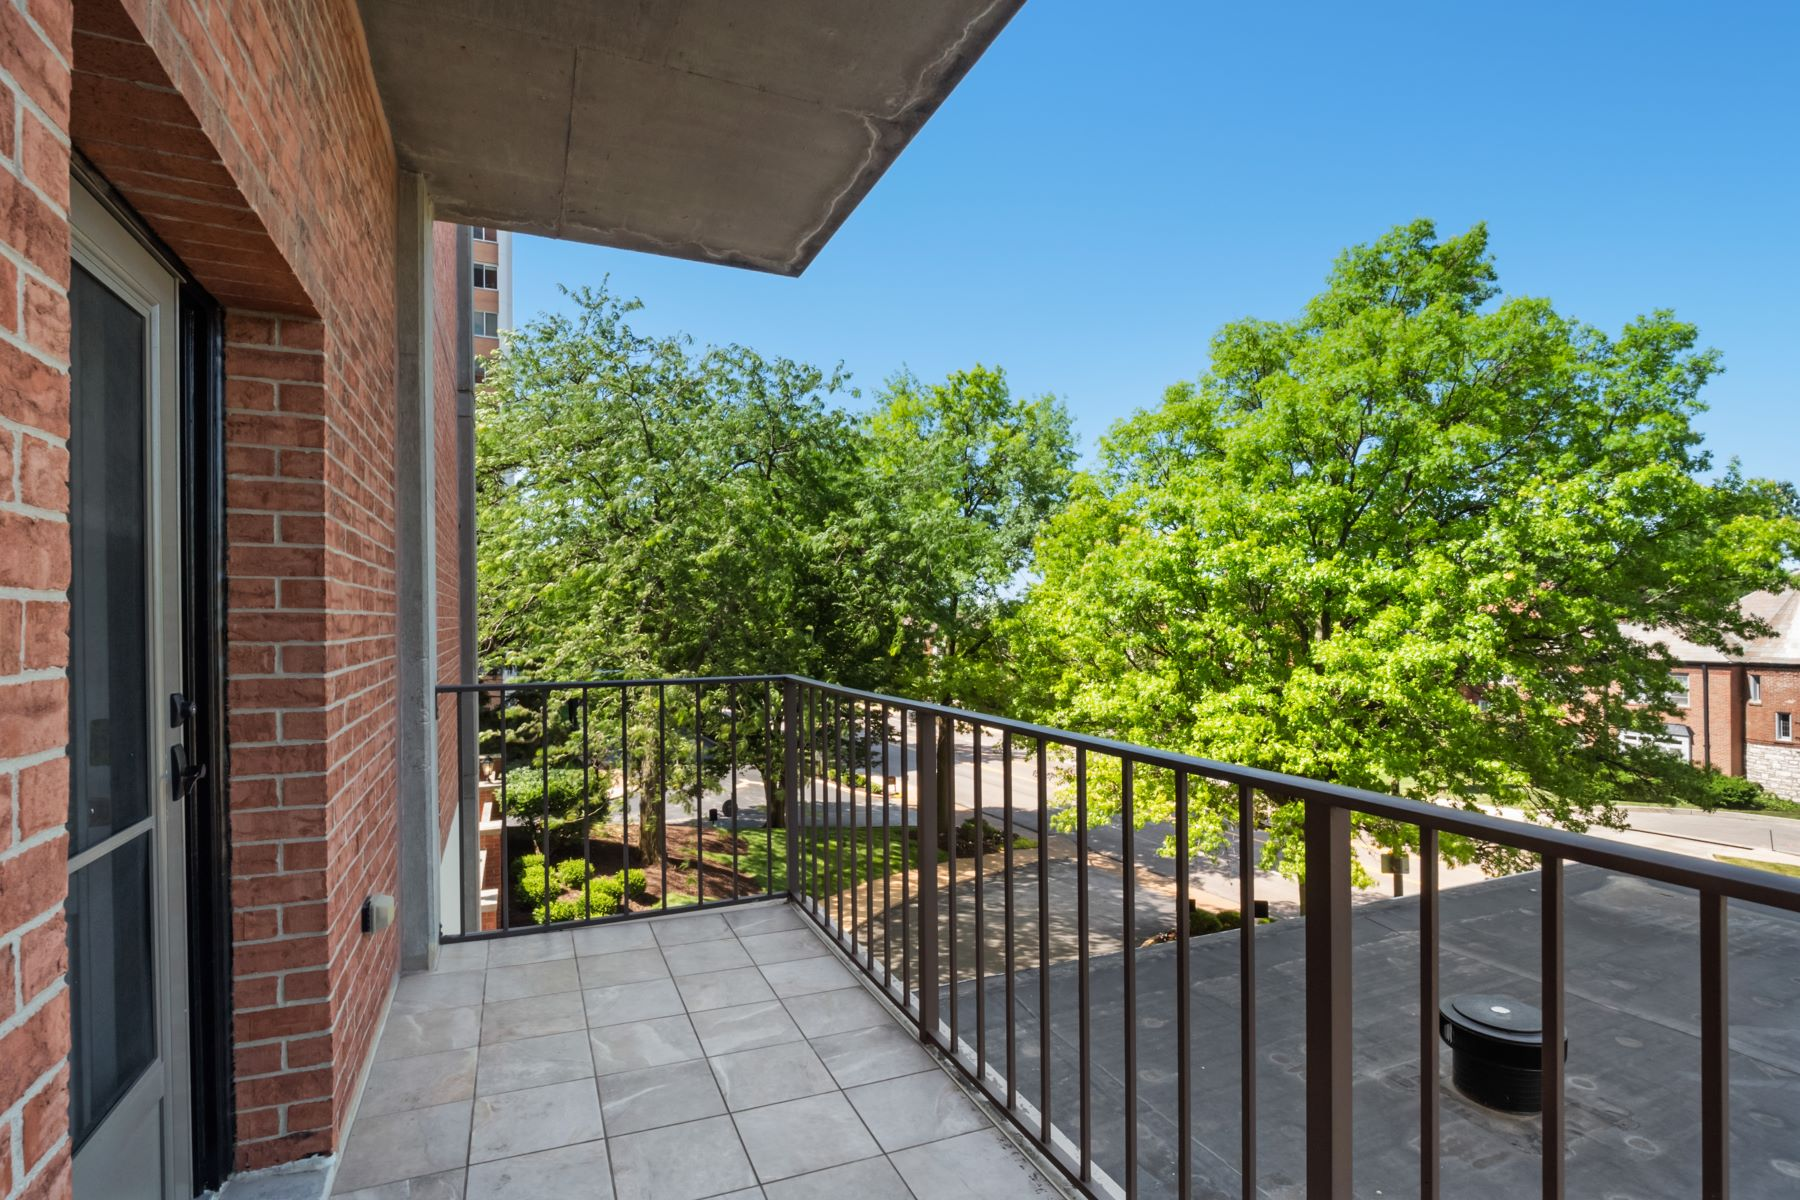 Additional photo for property listing at Spacious Highrise Condo in Clayton 816 South Hanley Road, 2A Clayton, Missouri 63105 United States